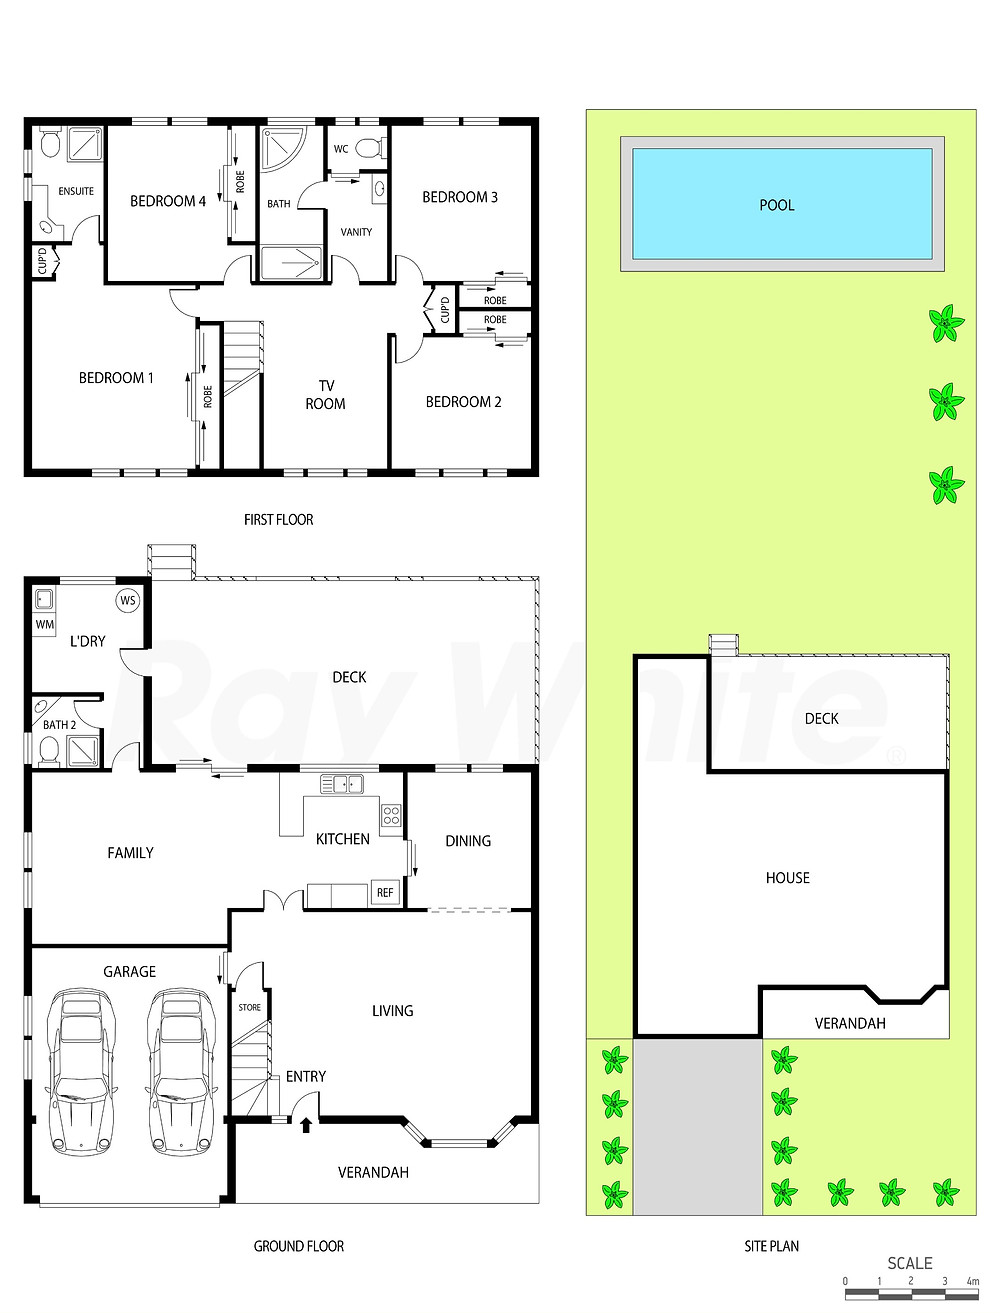 central coast real estate photography site plan service